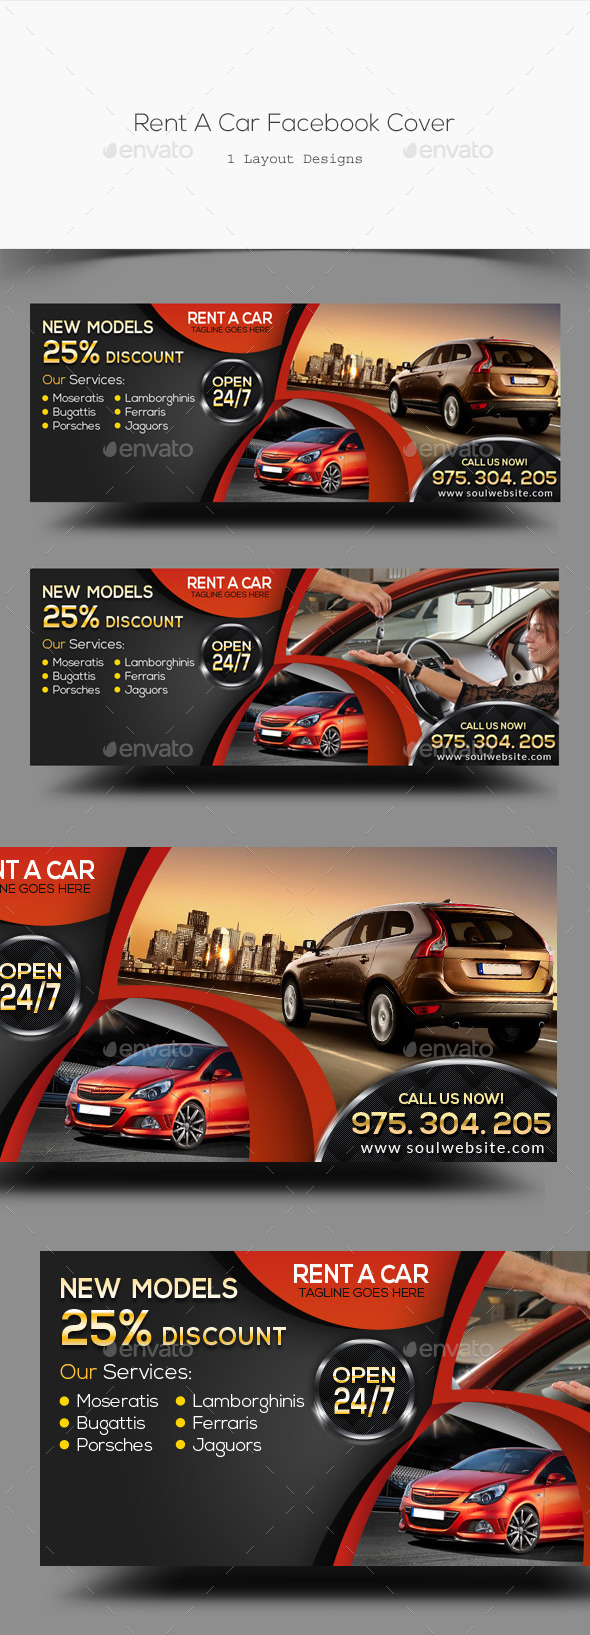 Rent A Car Facebook Cover